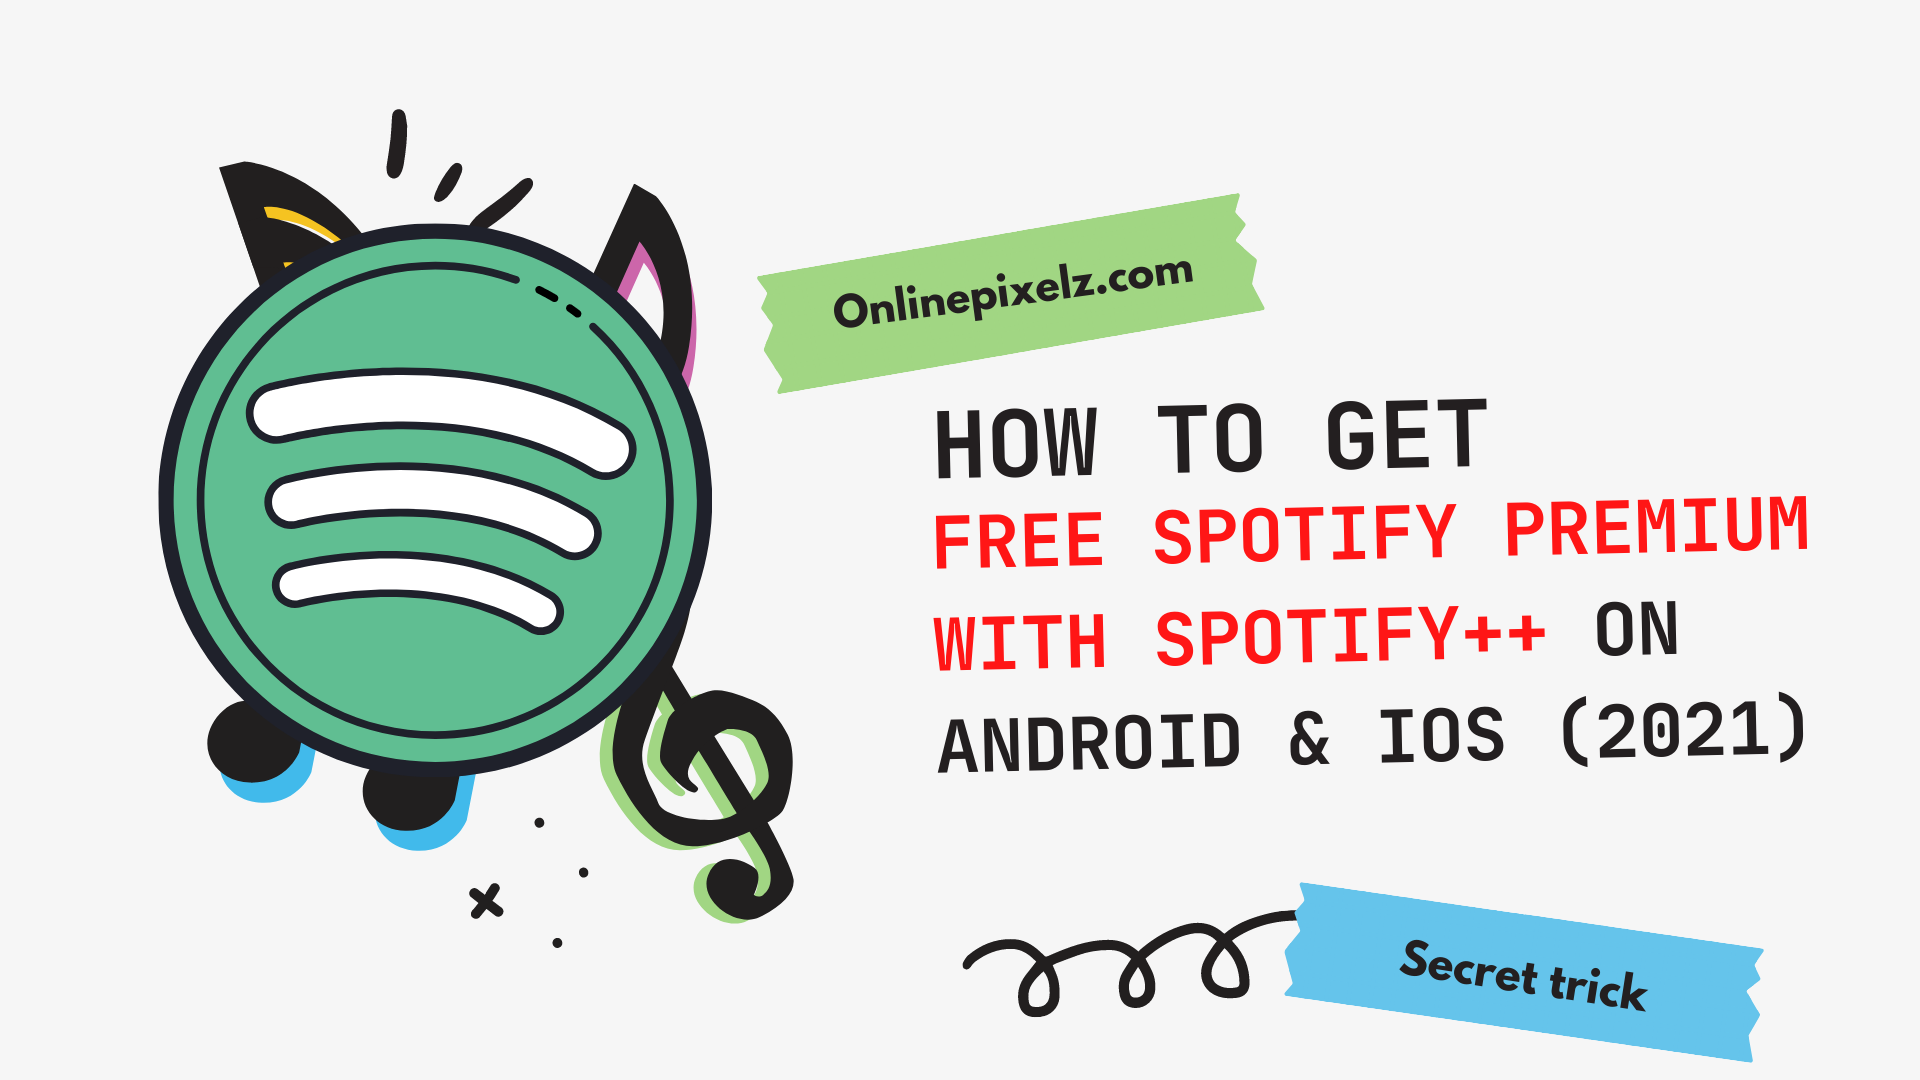 How To Get Free Spotify Premium With Spotify++ On Android & iOS (2021)